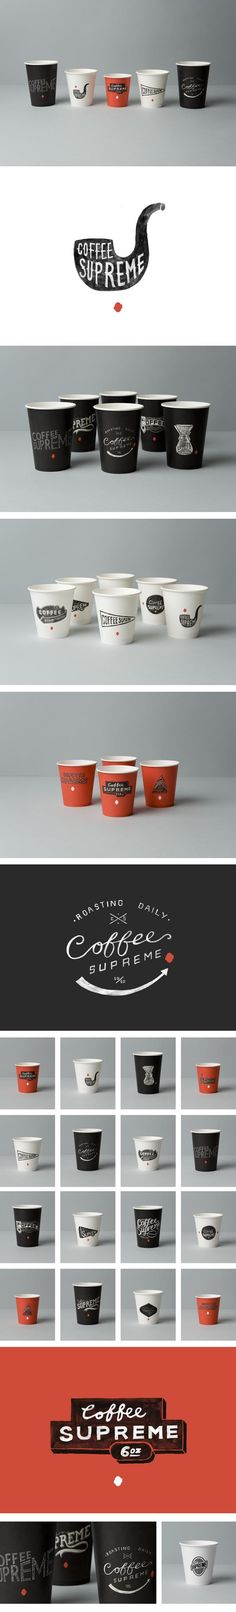 Coffee Supreme Packaging by Hardhat Designhttp://www.hardhatdesign.com/work/print/coffee-supreme-nz-and-aust/coffee-supreme